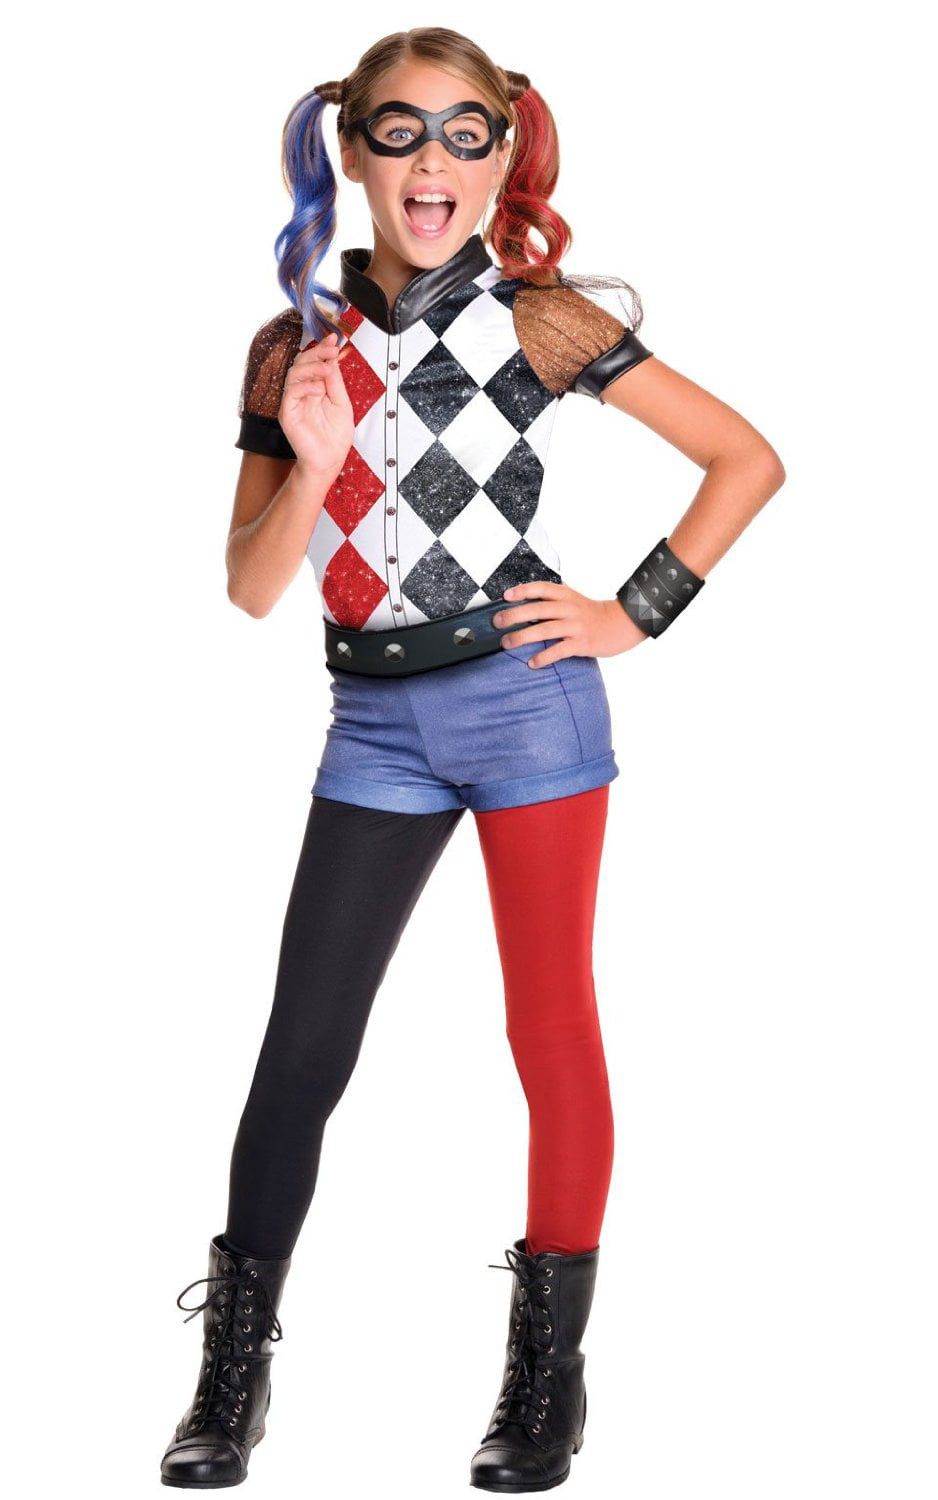 dc superhero girls harley quinn deluxe child costume walmartcom